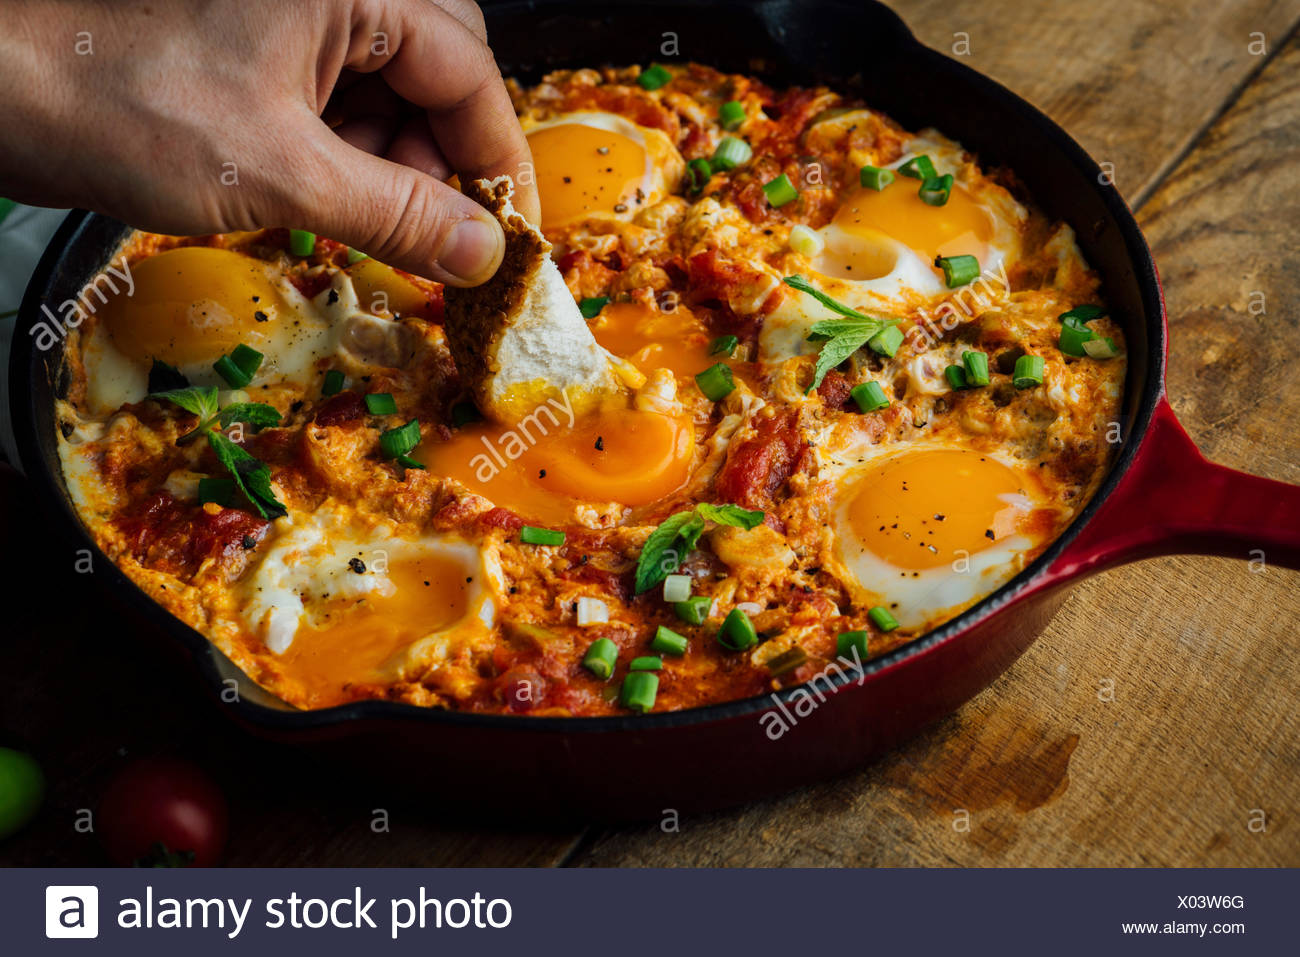 Dipping a traditional Turkish bread called simit into an egg dish made with eggs, tomatoes and green peppers called menemen or s - Stock Image